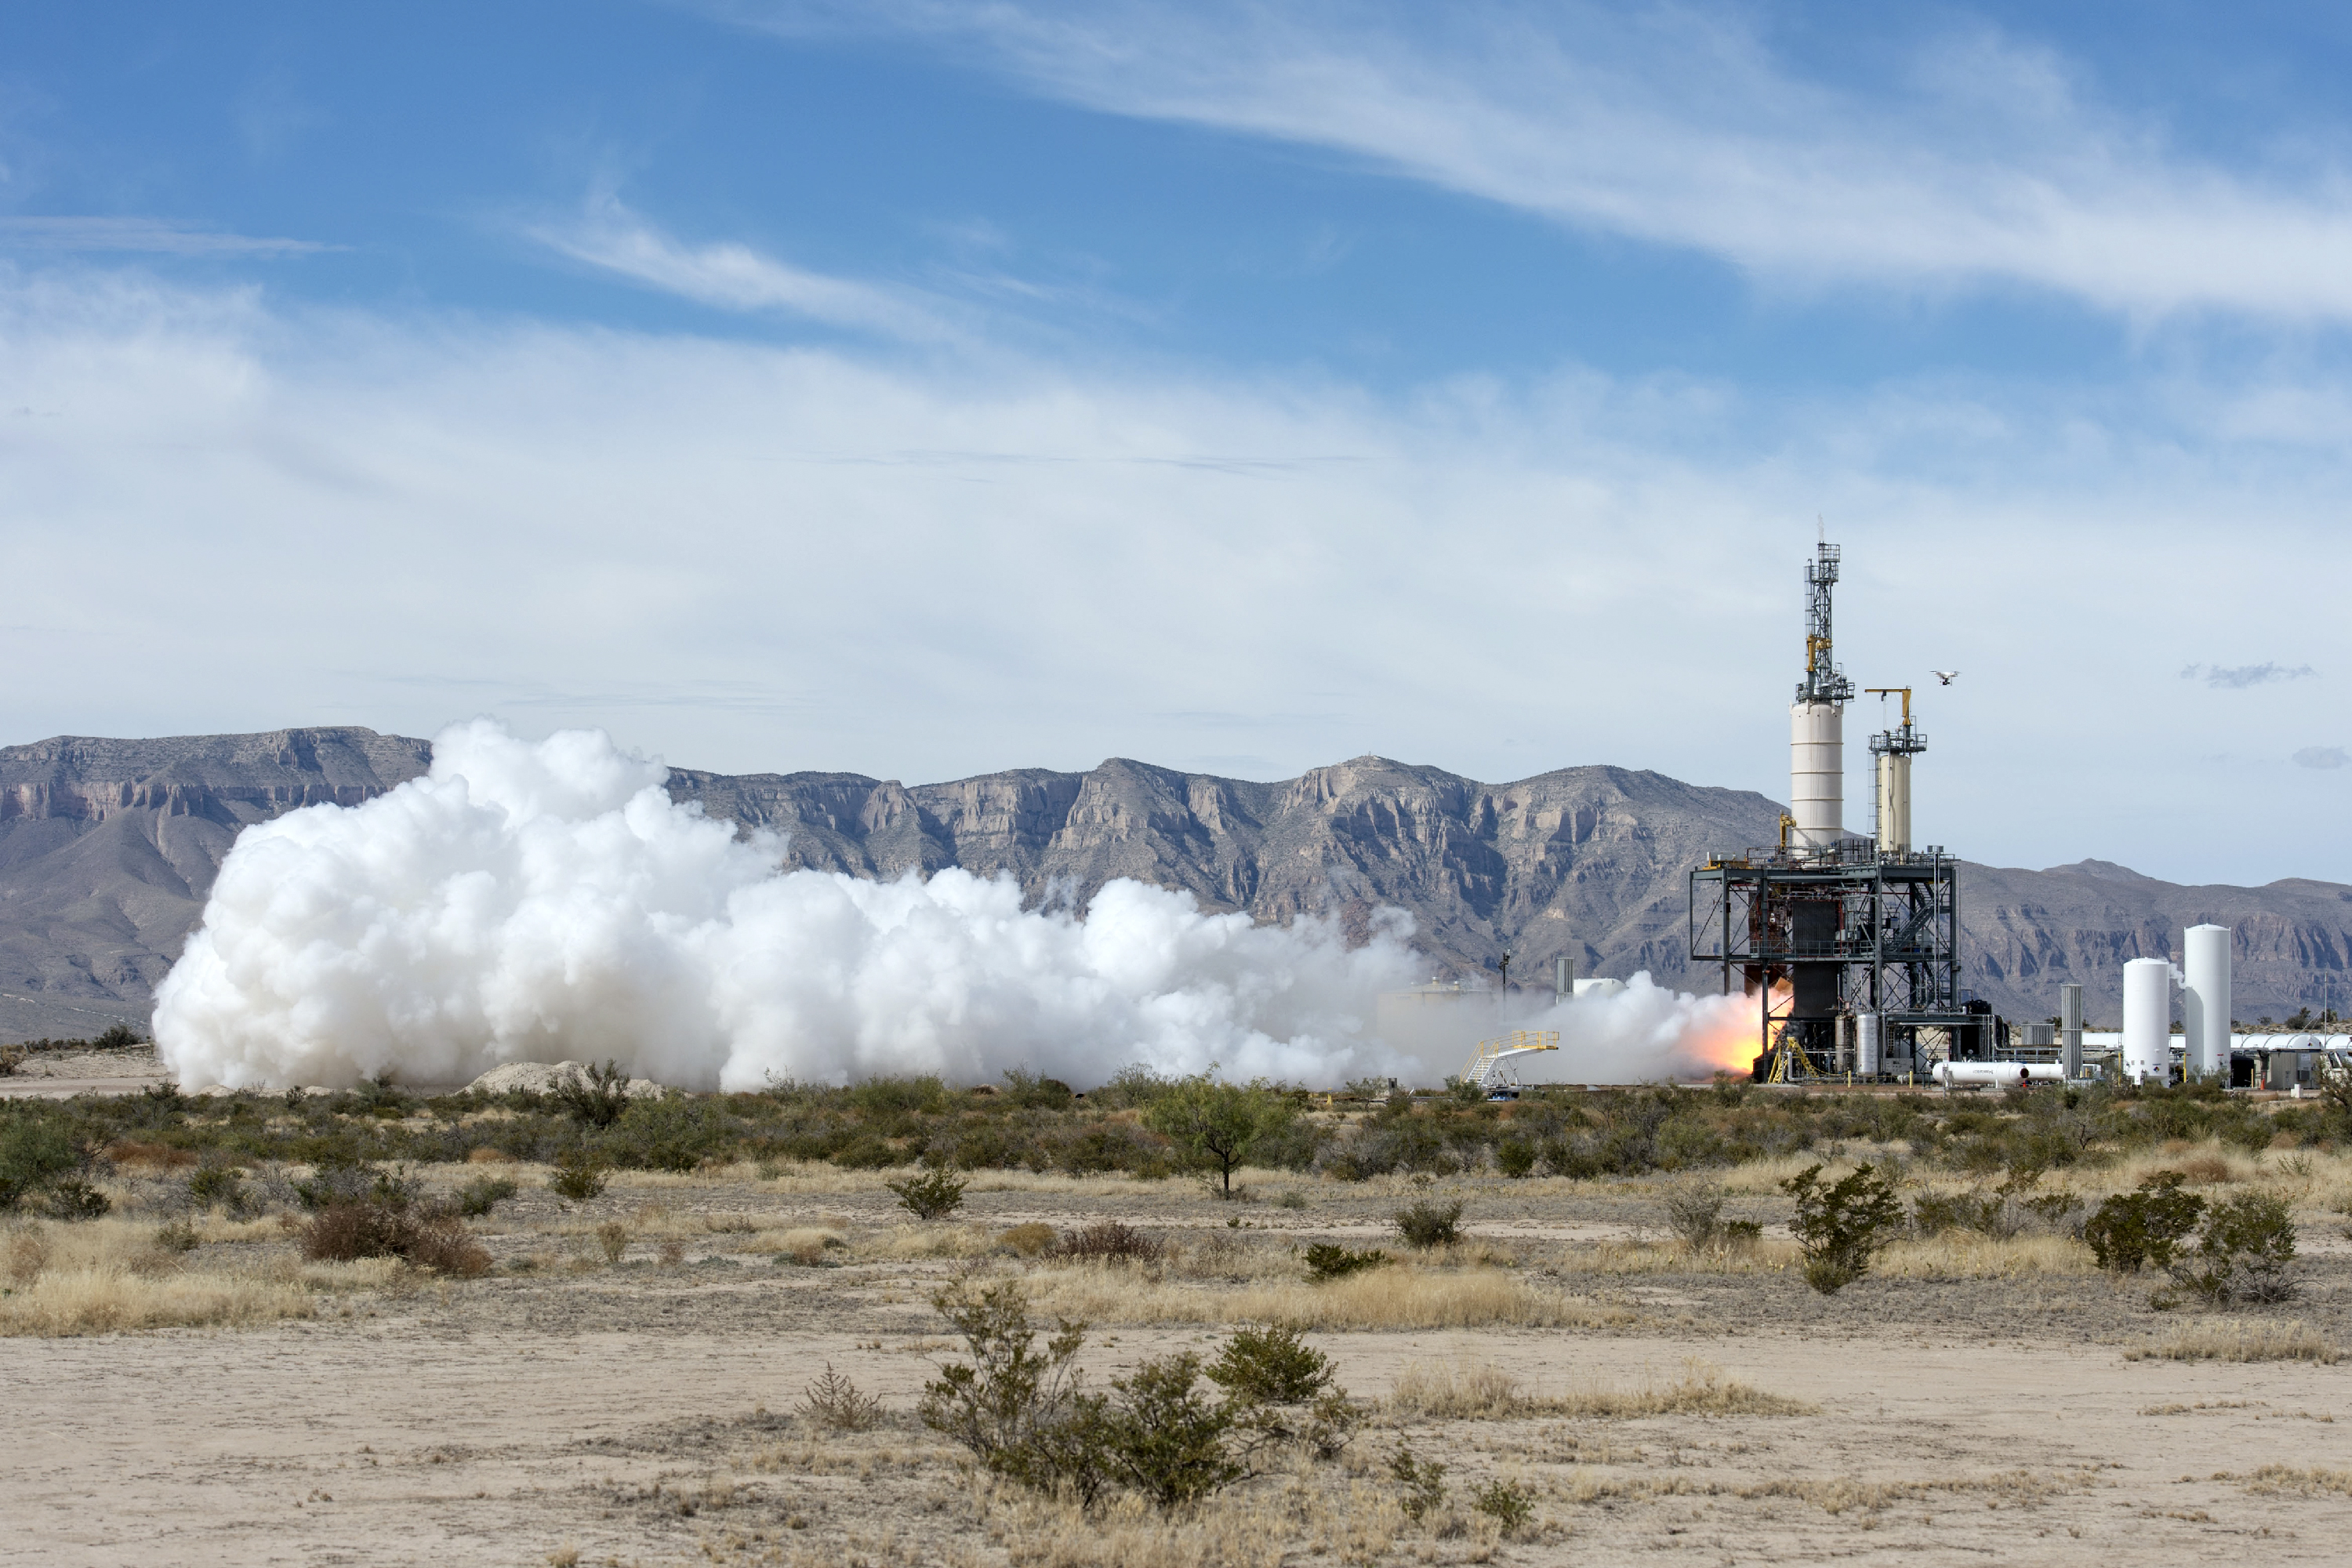 Amazon CEO Jeff Bezos' Secretive Blue Origin Test-Fires Rocket Engine (Video)